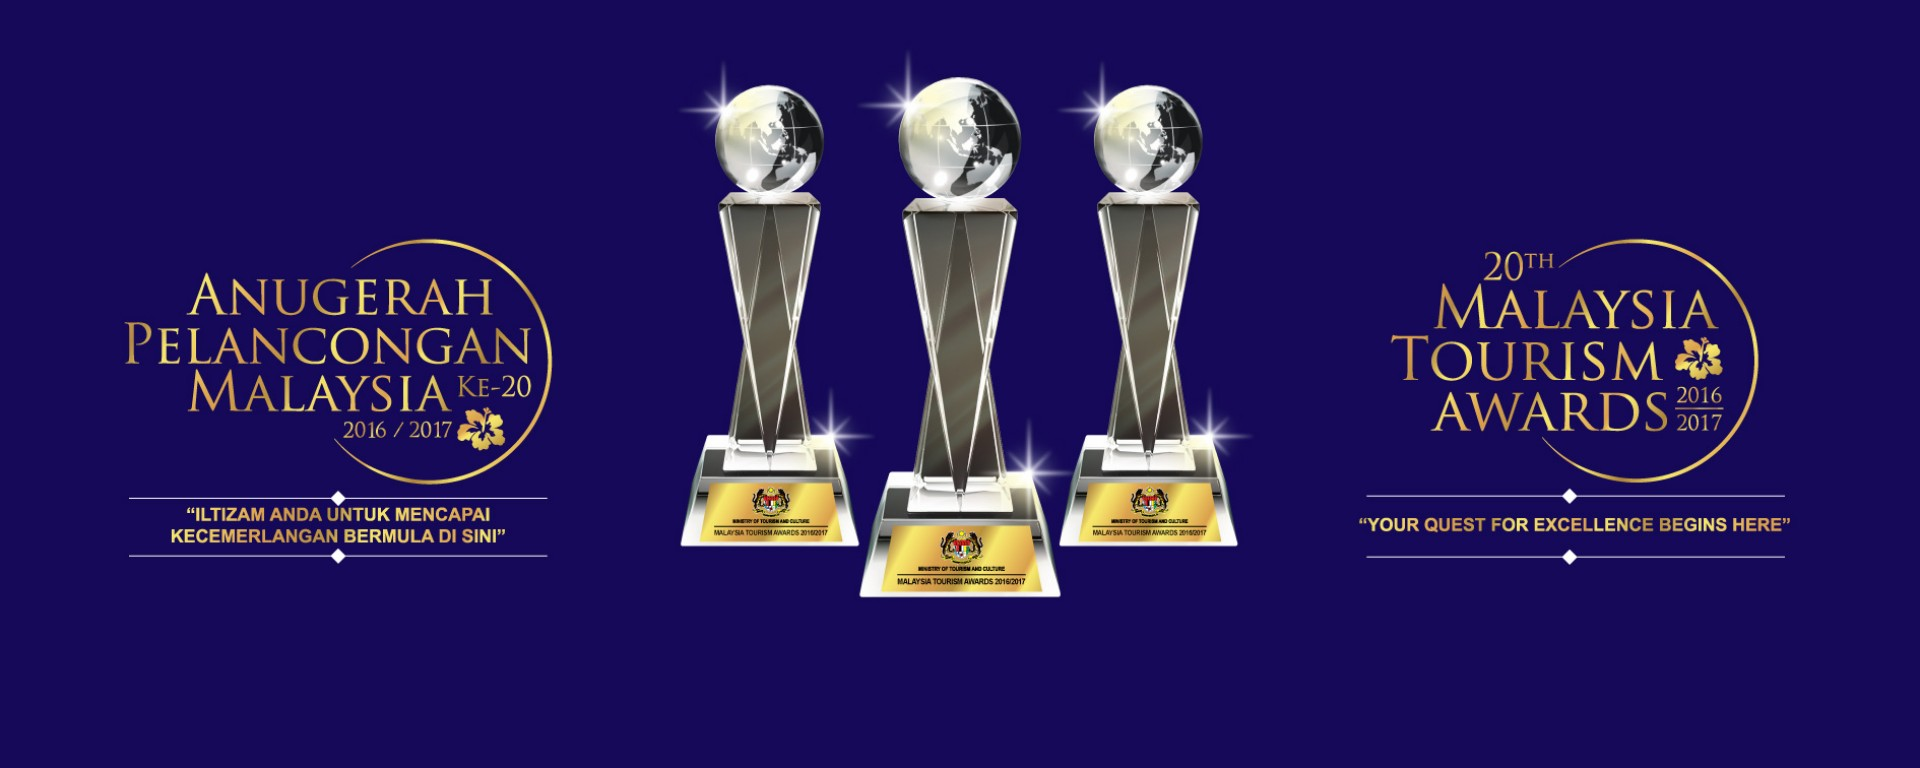 Anugerah Pelancongan Malaysia <div class='action'><a href='/apm-20/about-awards' class='btn btn-danger btn-lg' target=''>Find Out More</a></div>